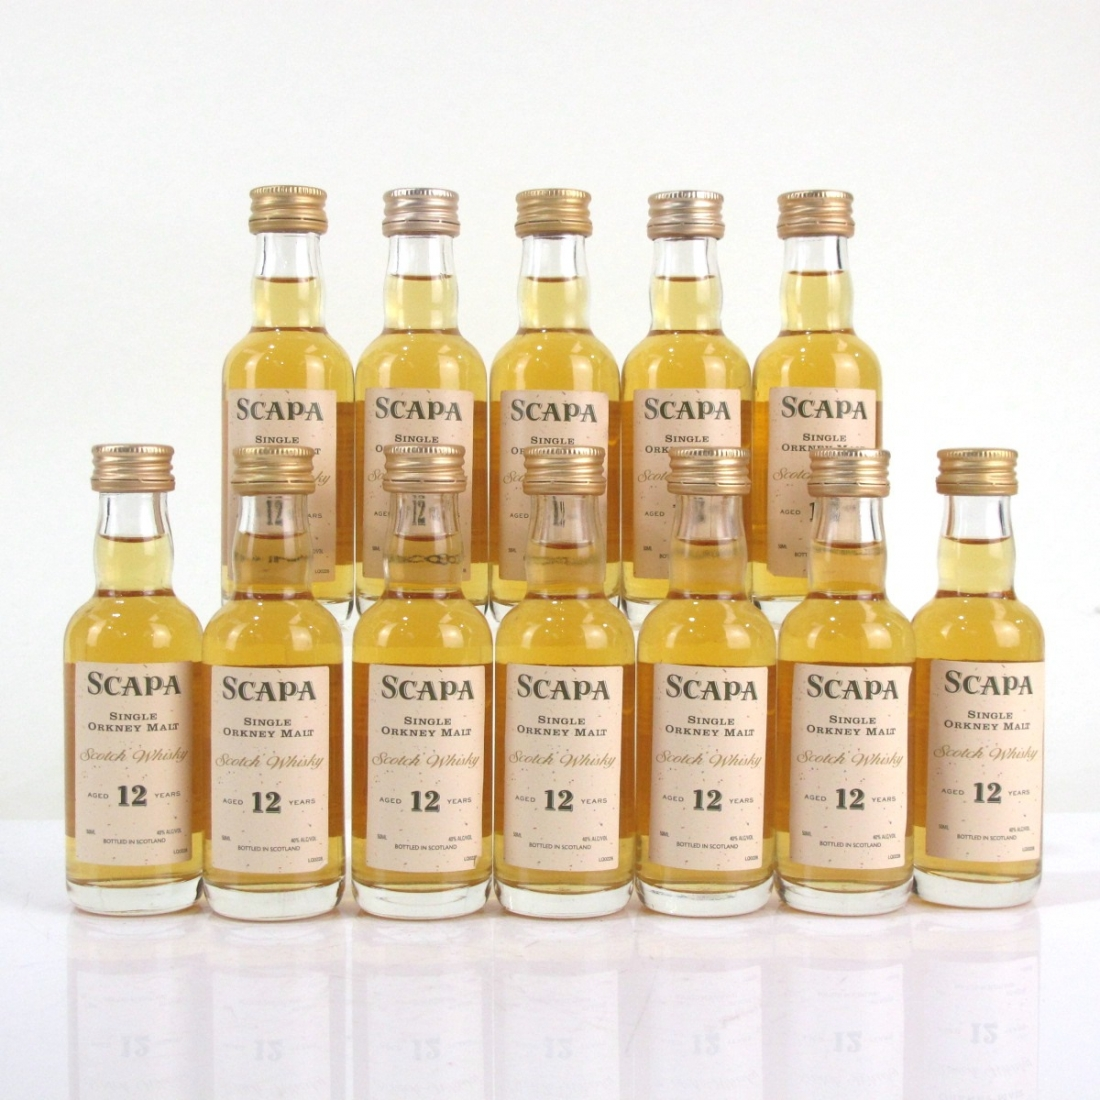 Scapa 12 Year Old Miniatures 12 x 5cl / US Import